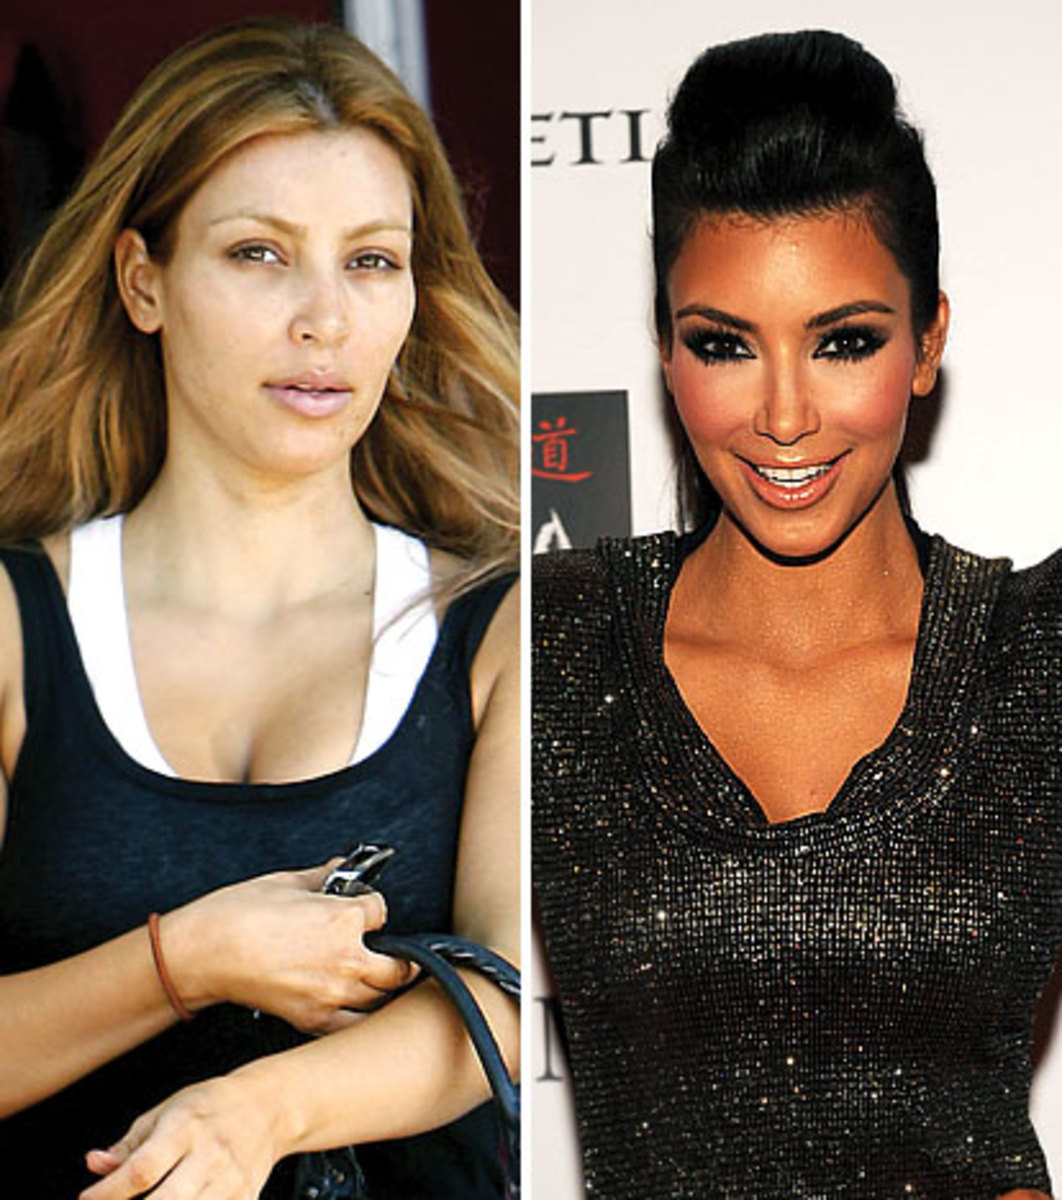 Kim Kardashian looks like a normal person and not an over tanned, painted Barbie doll.